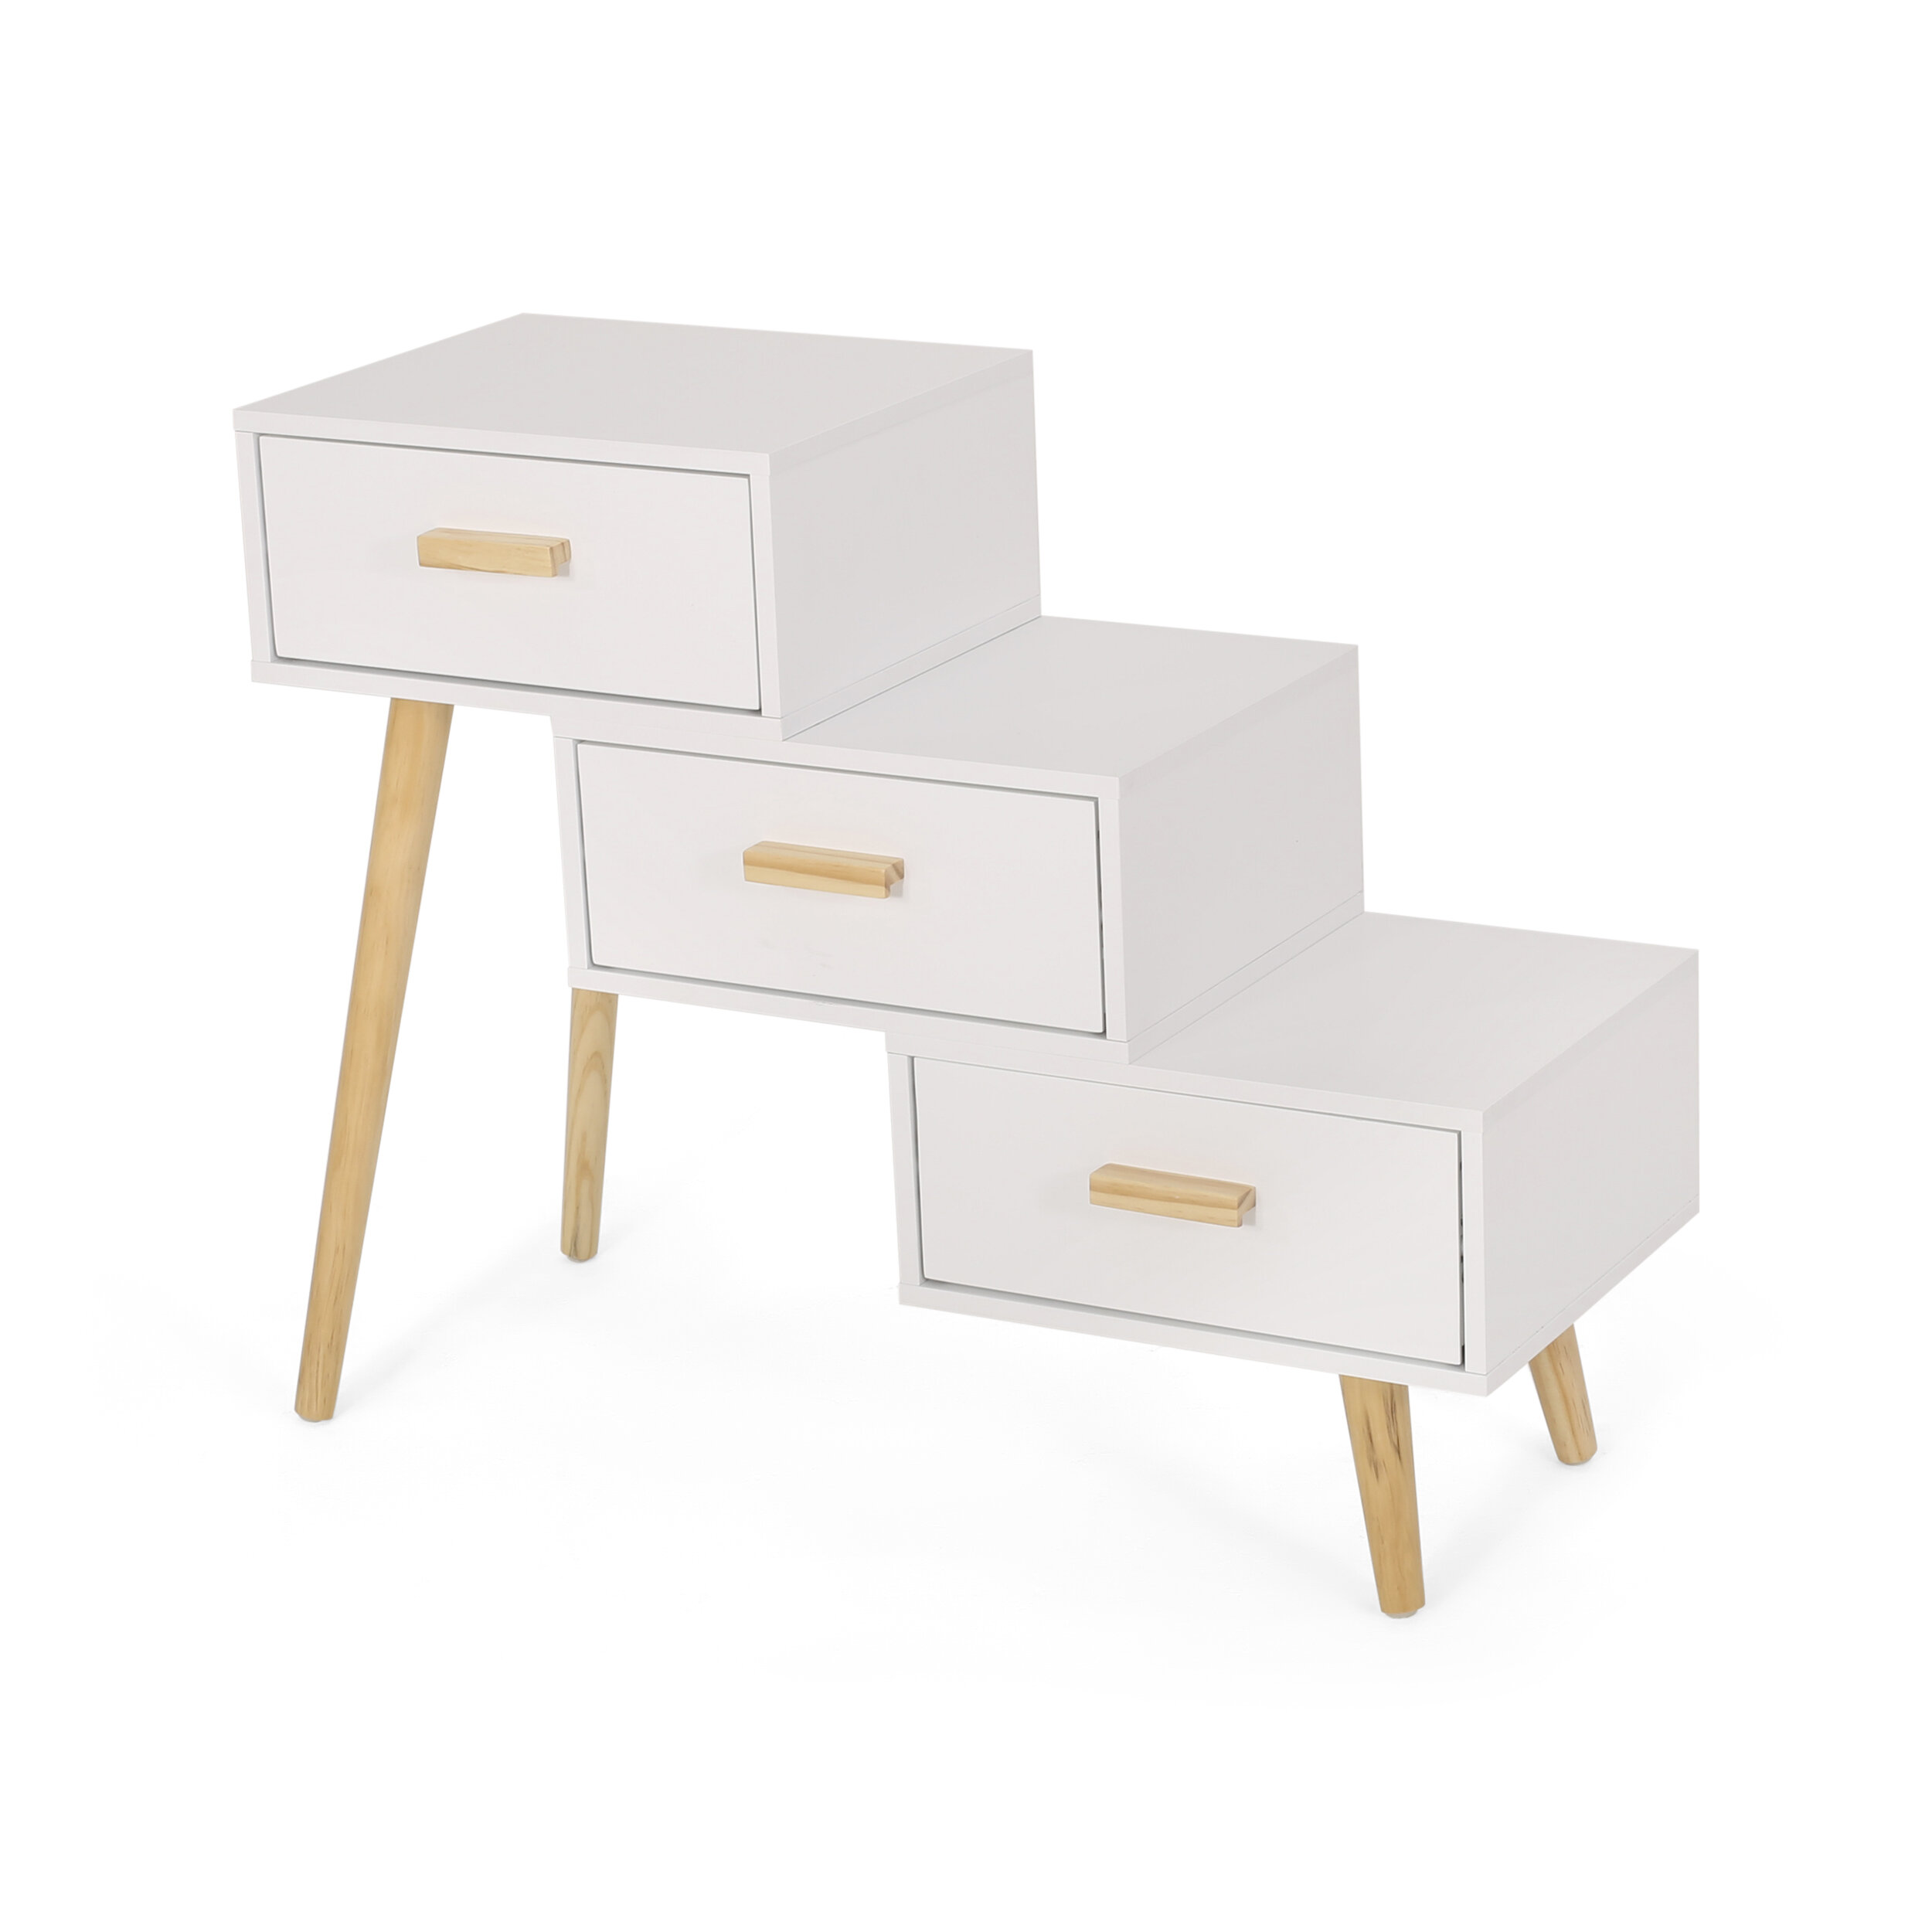 Corrigan Studio® Jonas 3 Drawer Accent Chest & Reviews | Wayfair